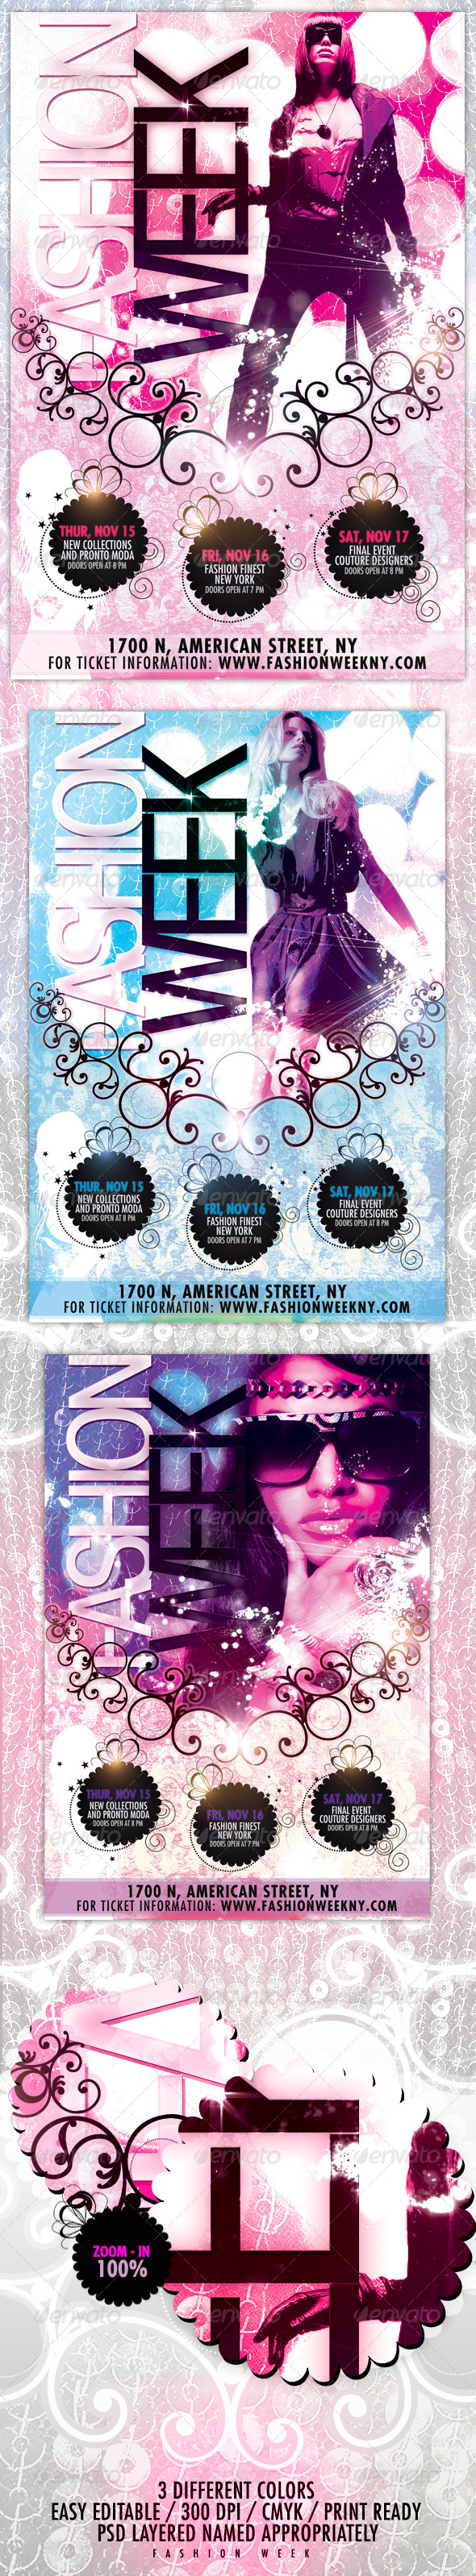 Graphic River Fashion Week Flyer Print Templates -  Flyers  Events  Other 504105